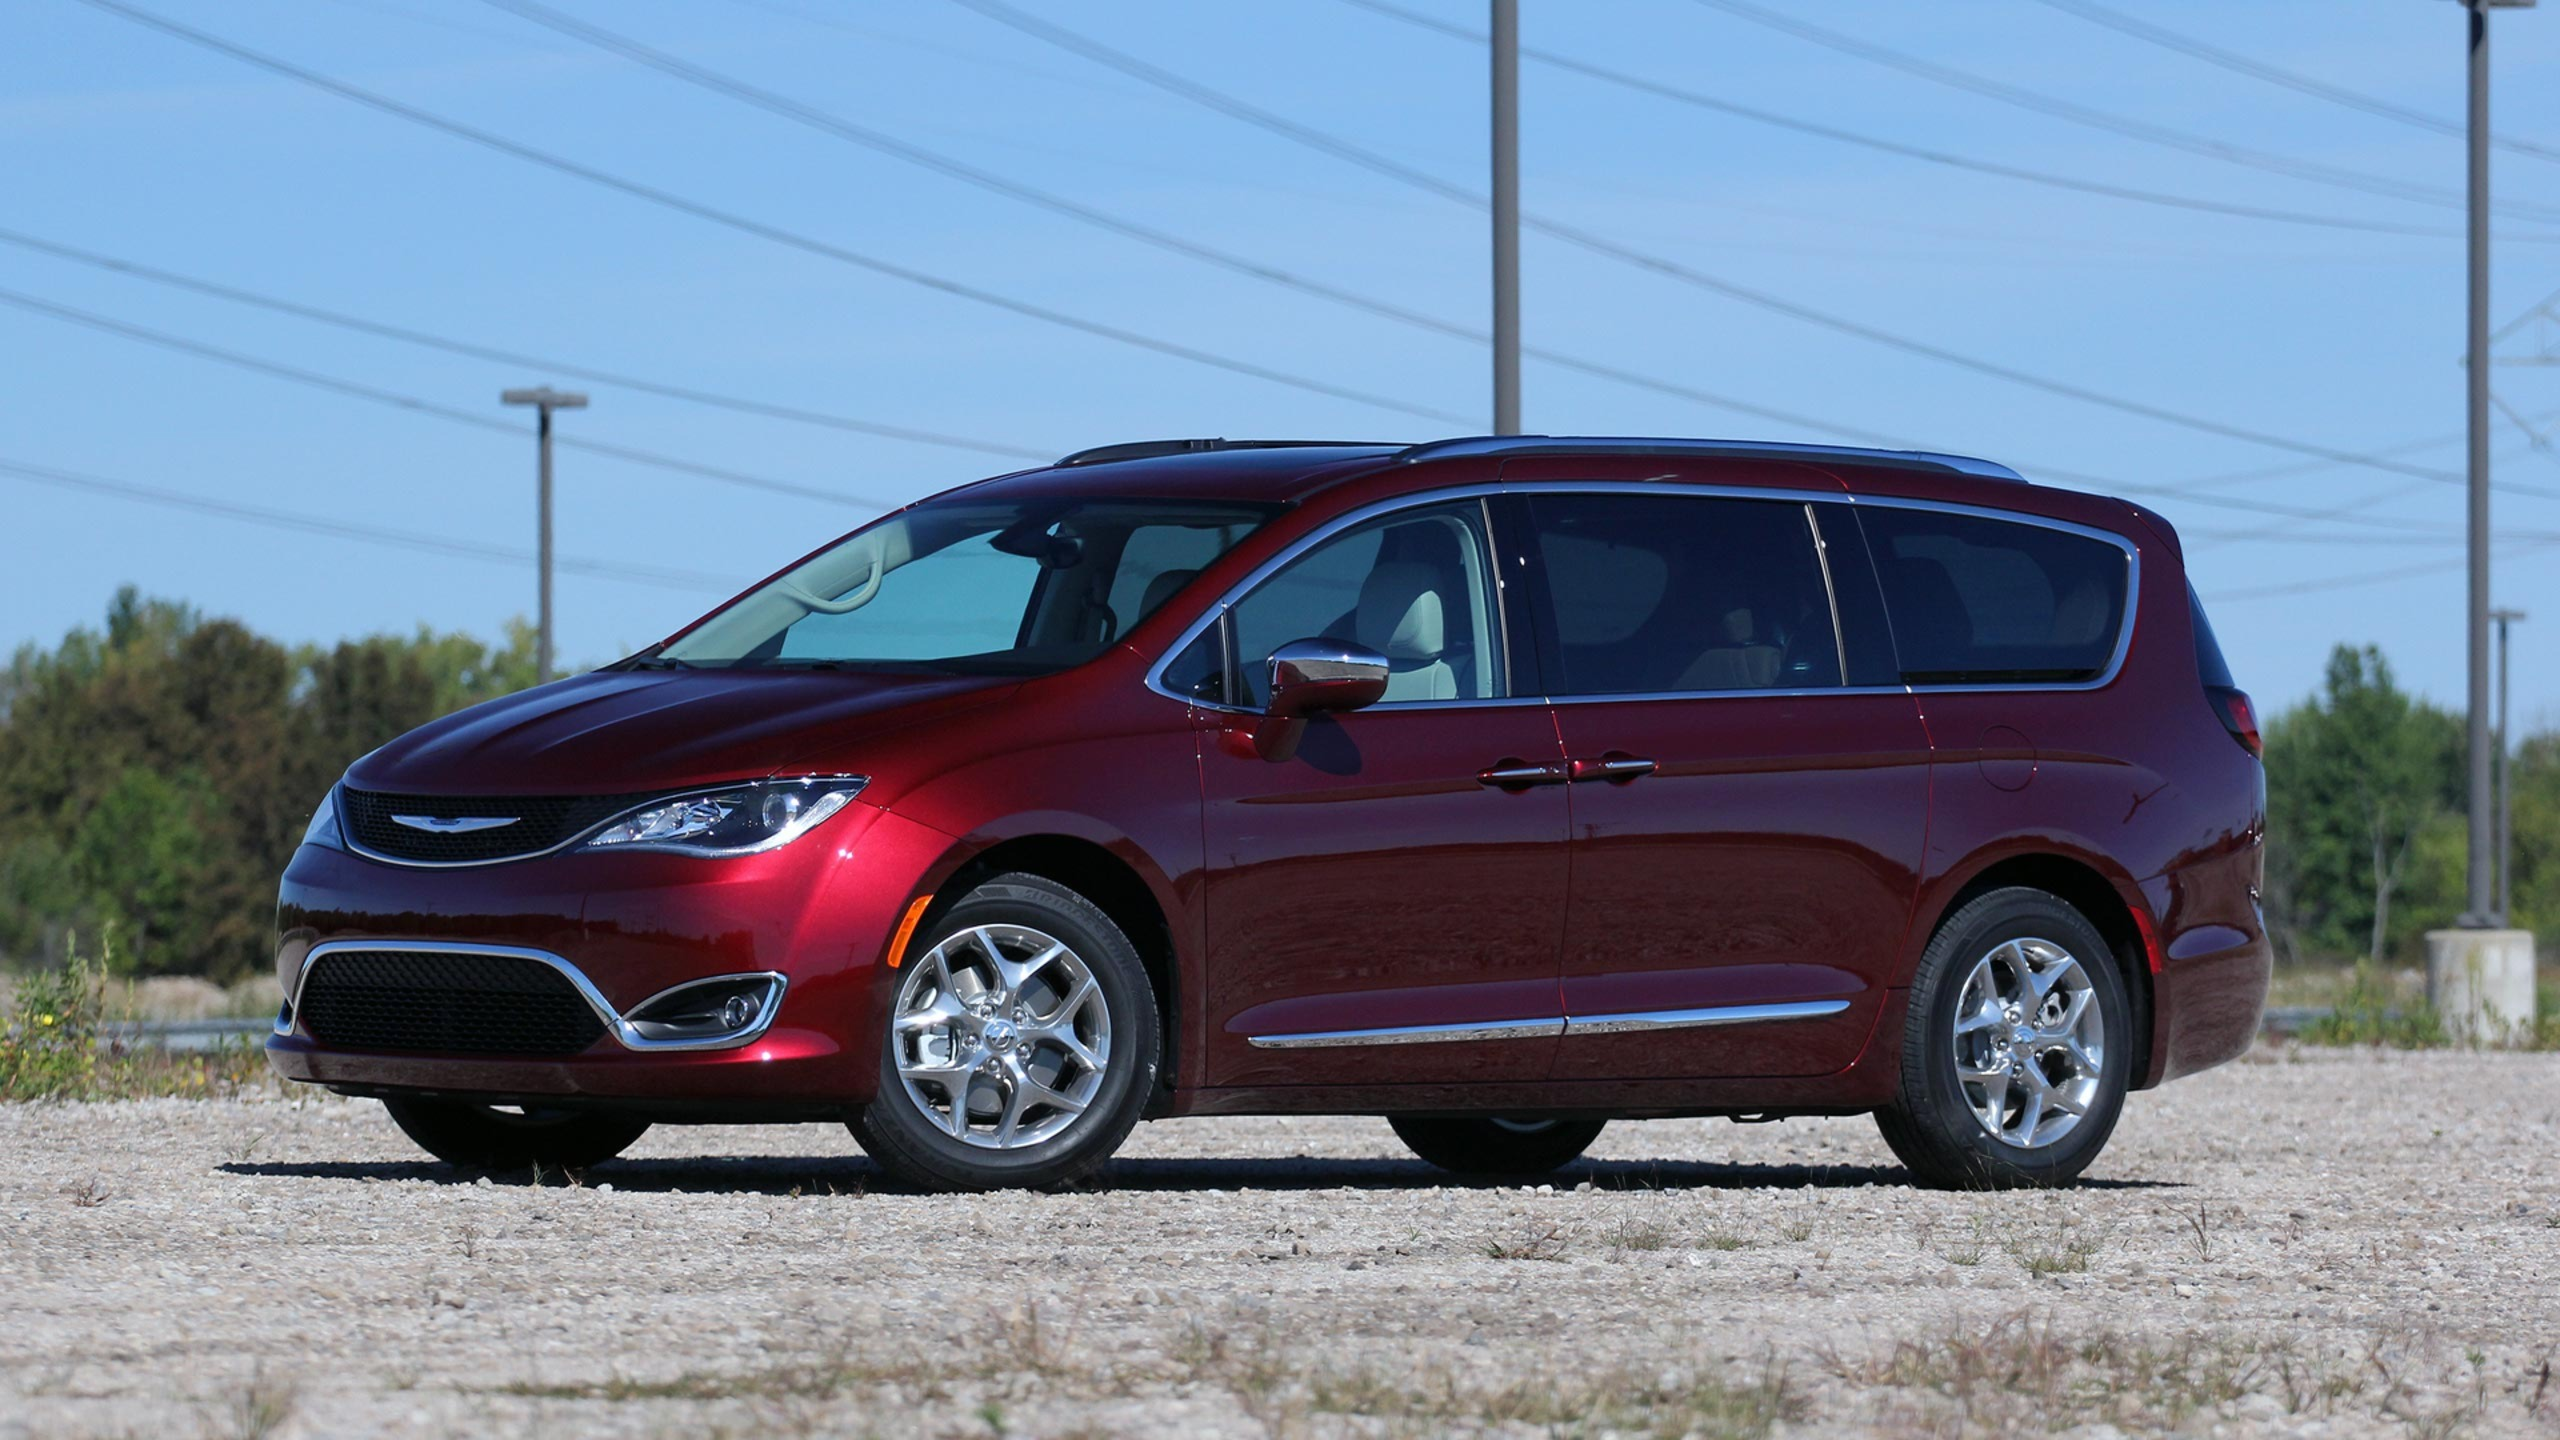 Chrysler Pacifica photo 170210